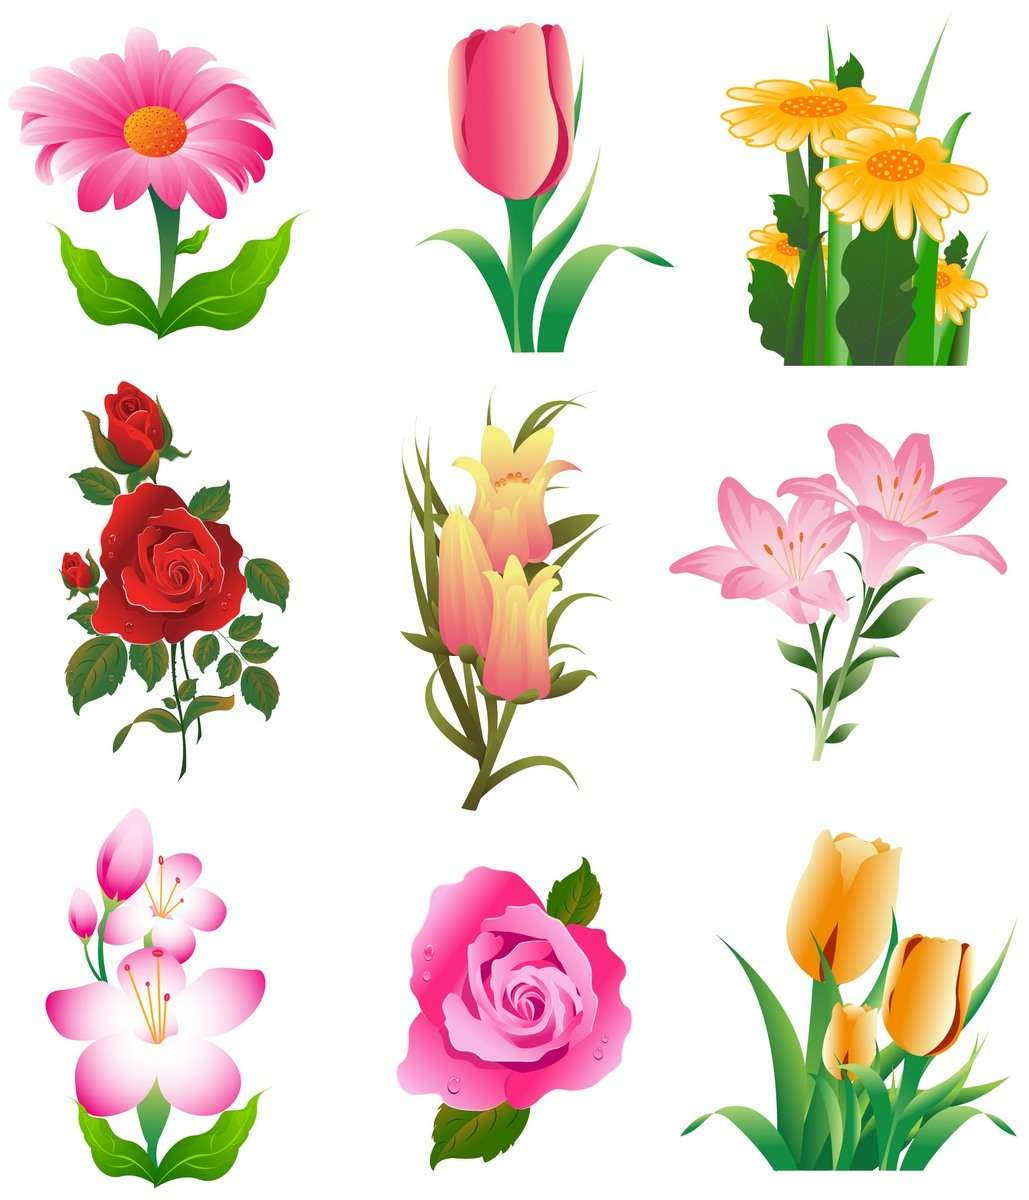 Flower, Rose, Tulip png